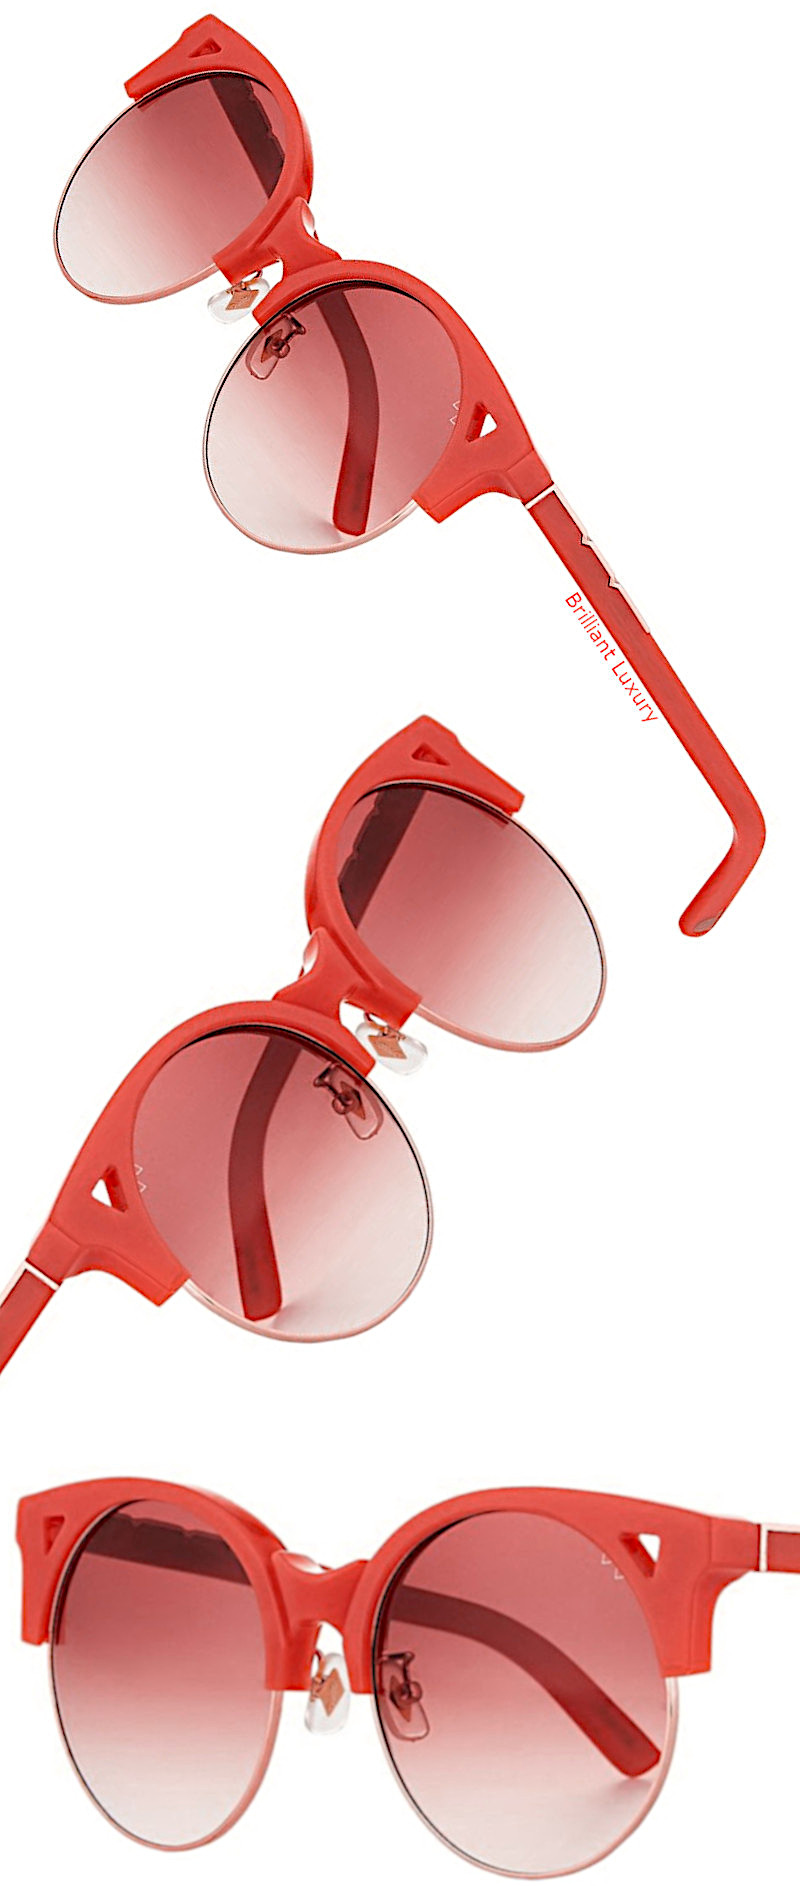 Up & At Em semi-rimless round sunglasses in coral